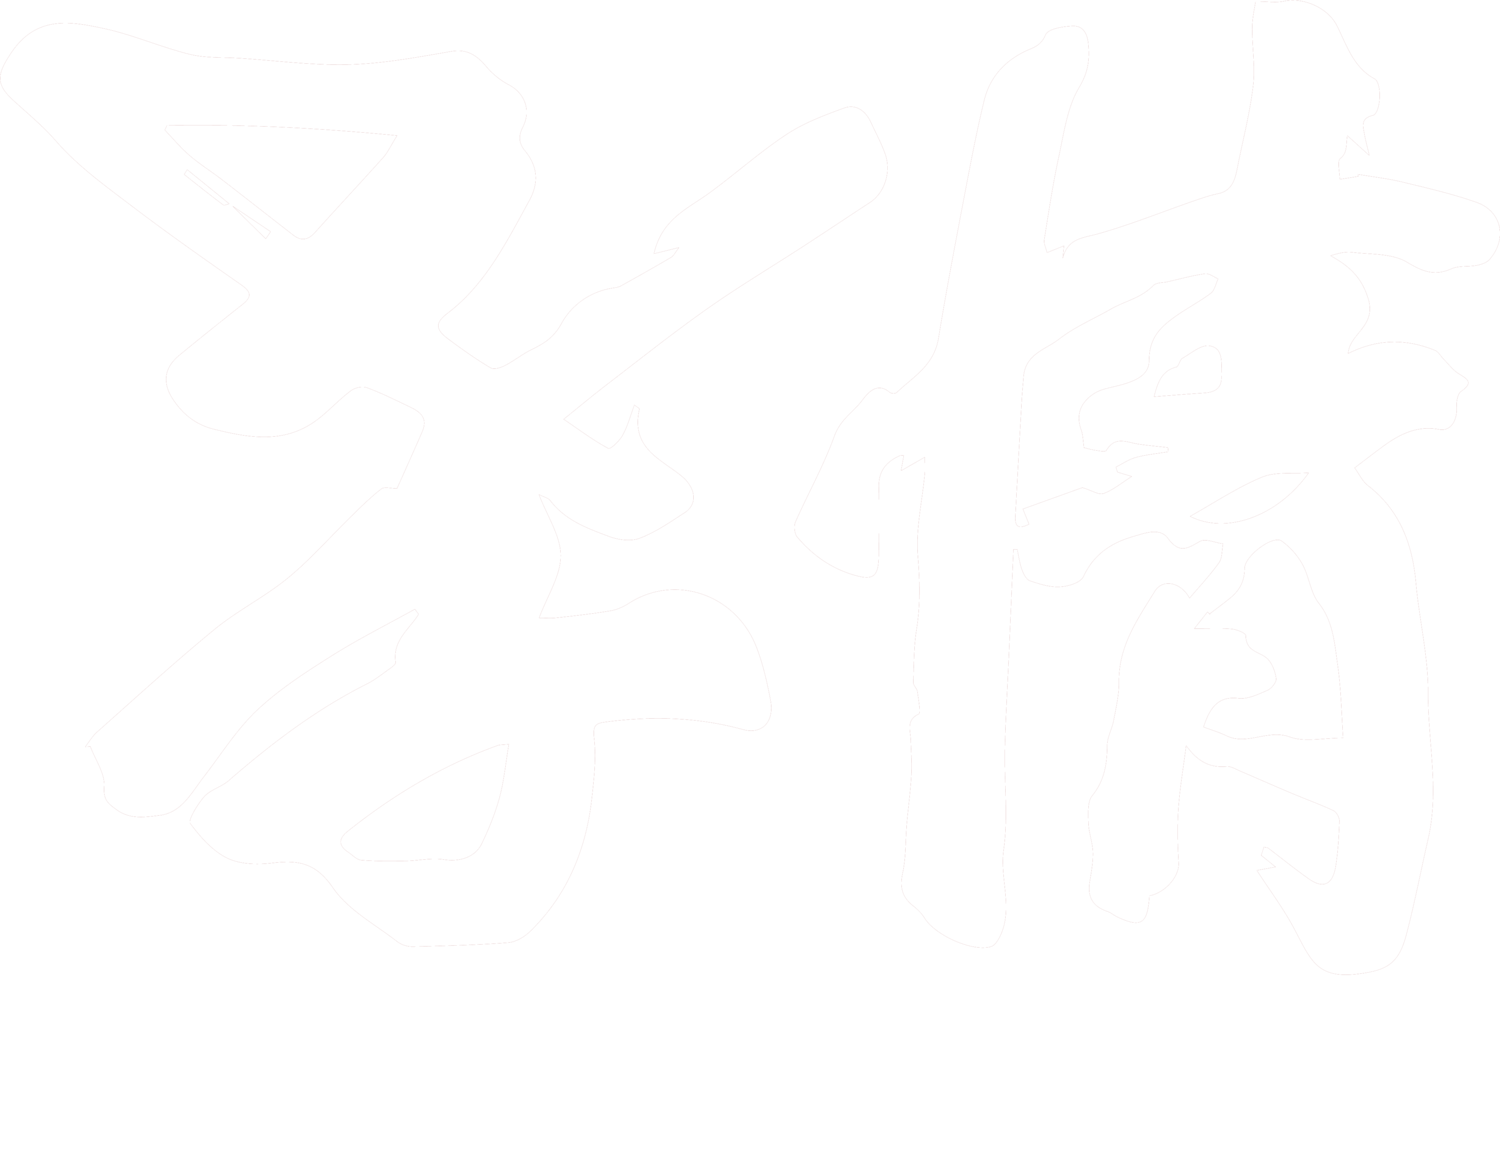 Hyo Jeong Promise